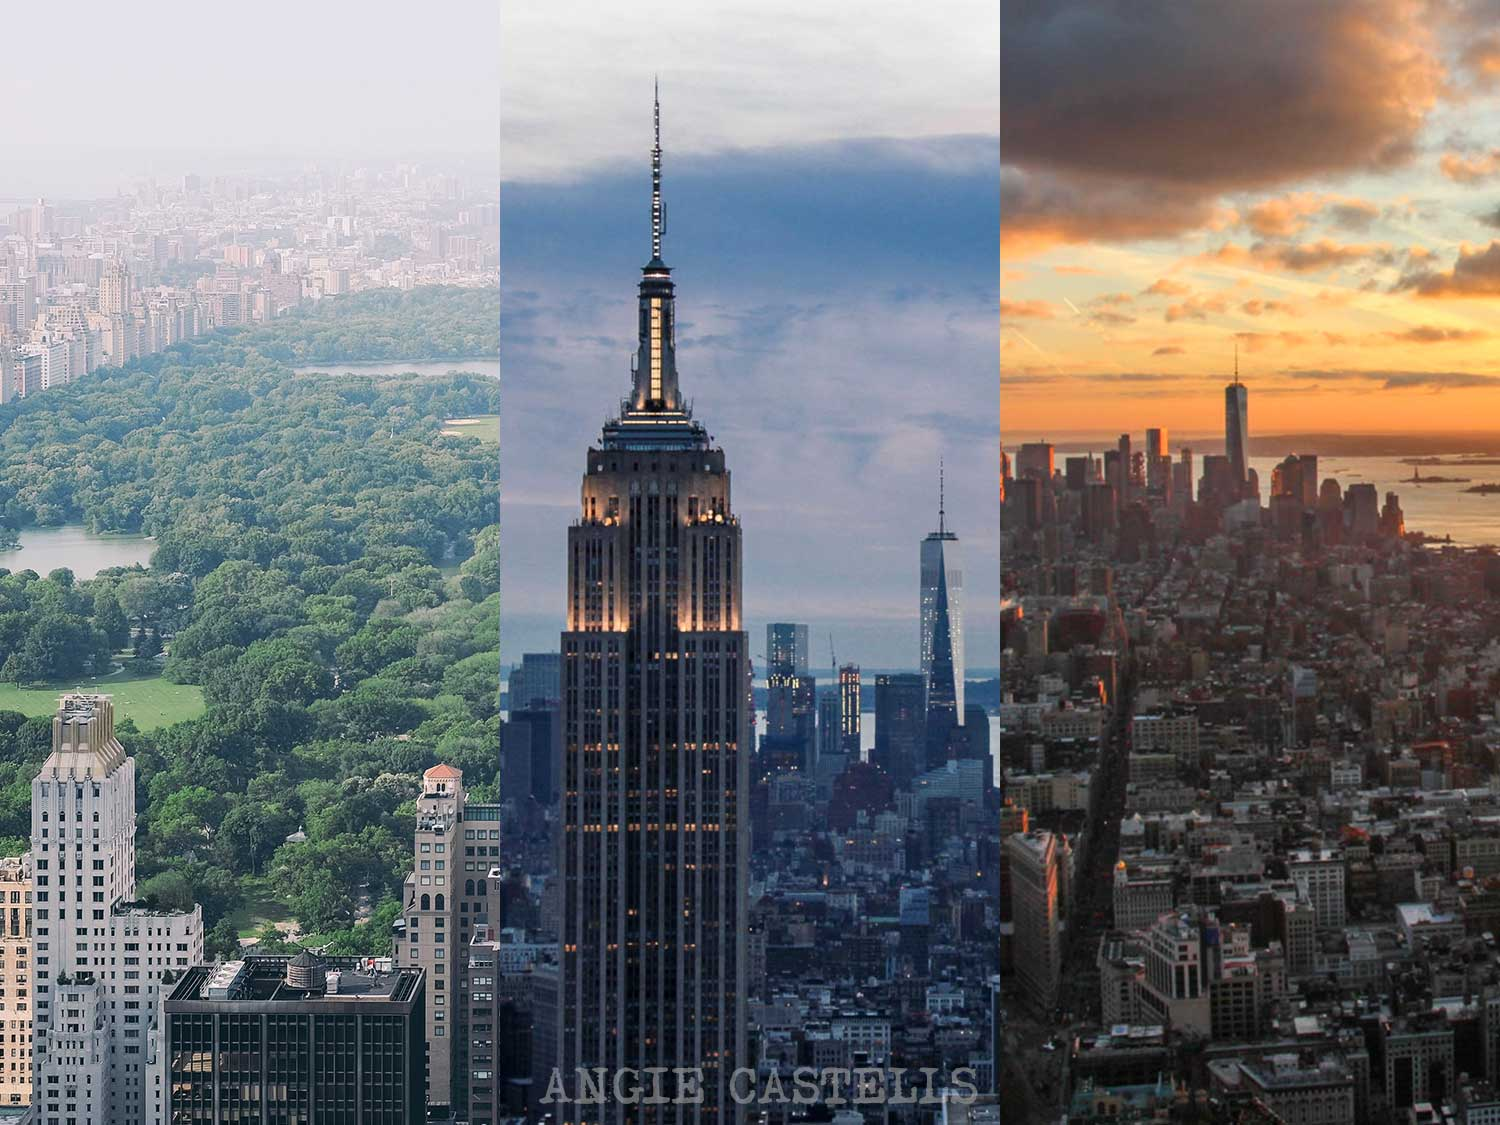 El mejor mirador de Nueva York: Top of the Rock, Empire State Building o One World